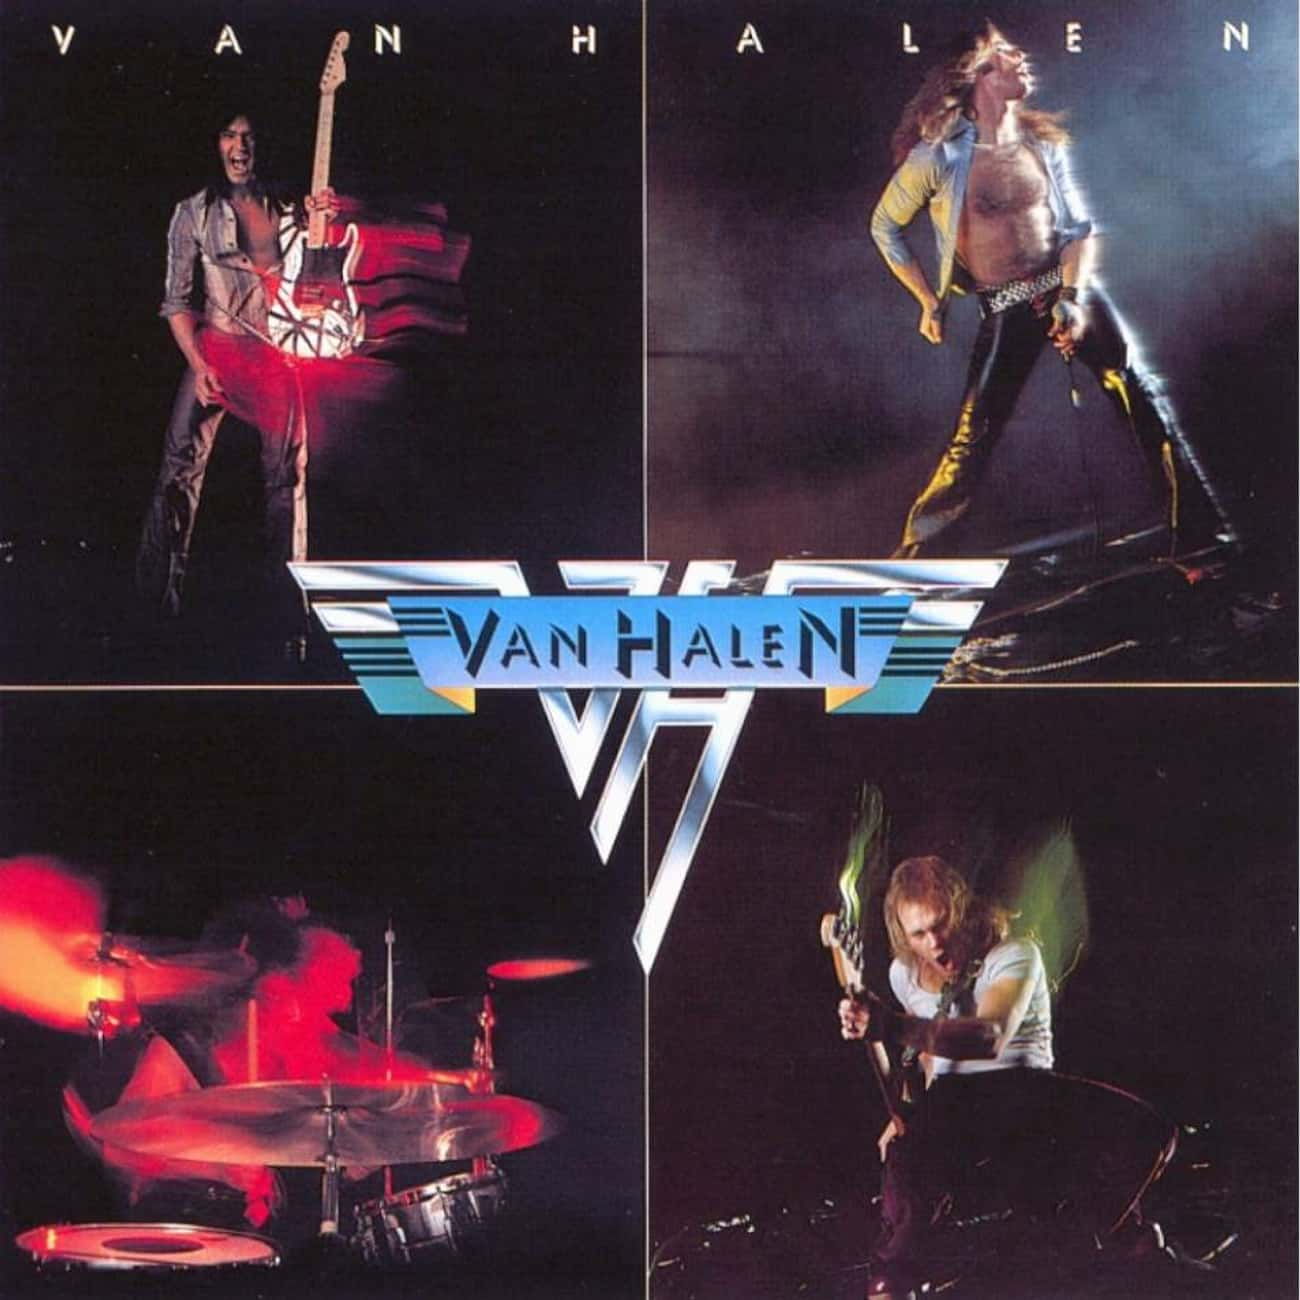 Van Halen is listed (or ranked) 1 on the list The Best Van Halen Albums of All Time